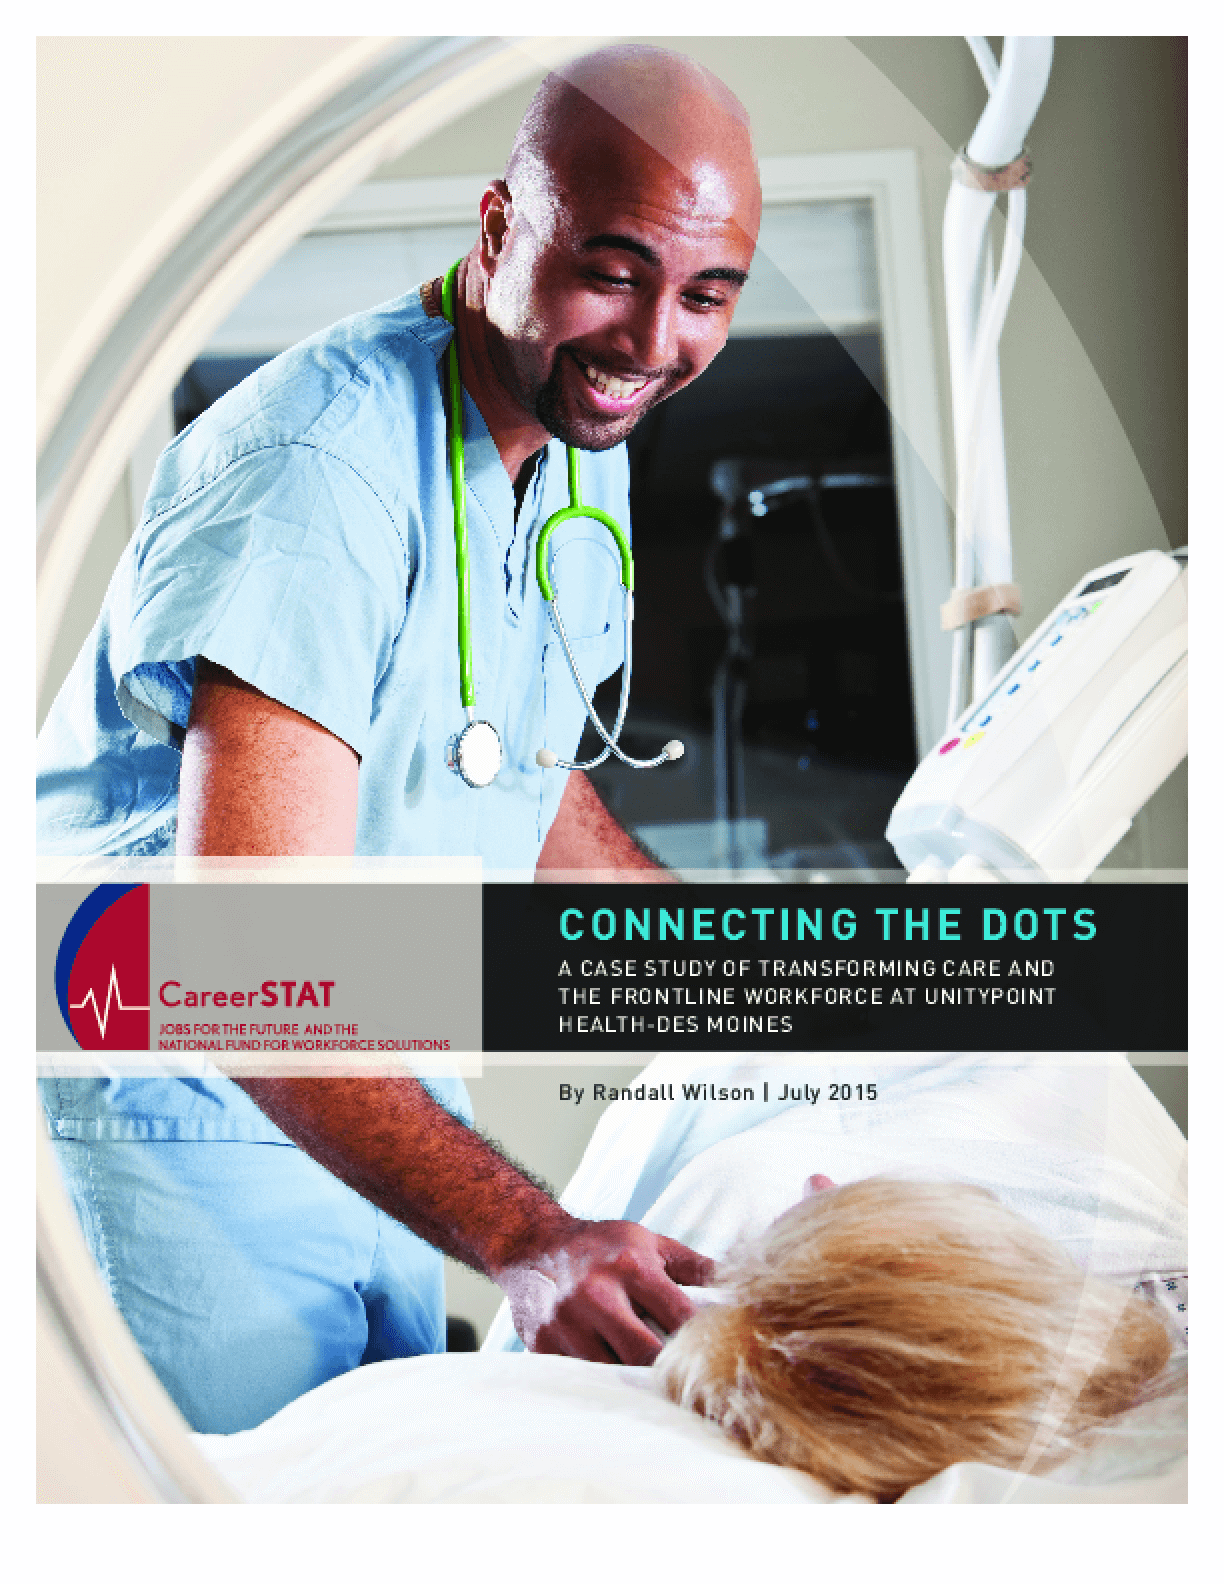 Connecting the Dots: A Case Study of Transforming Care and the Frontline Workforce at UnityPoint Health-Des Moines